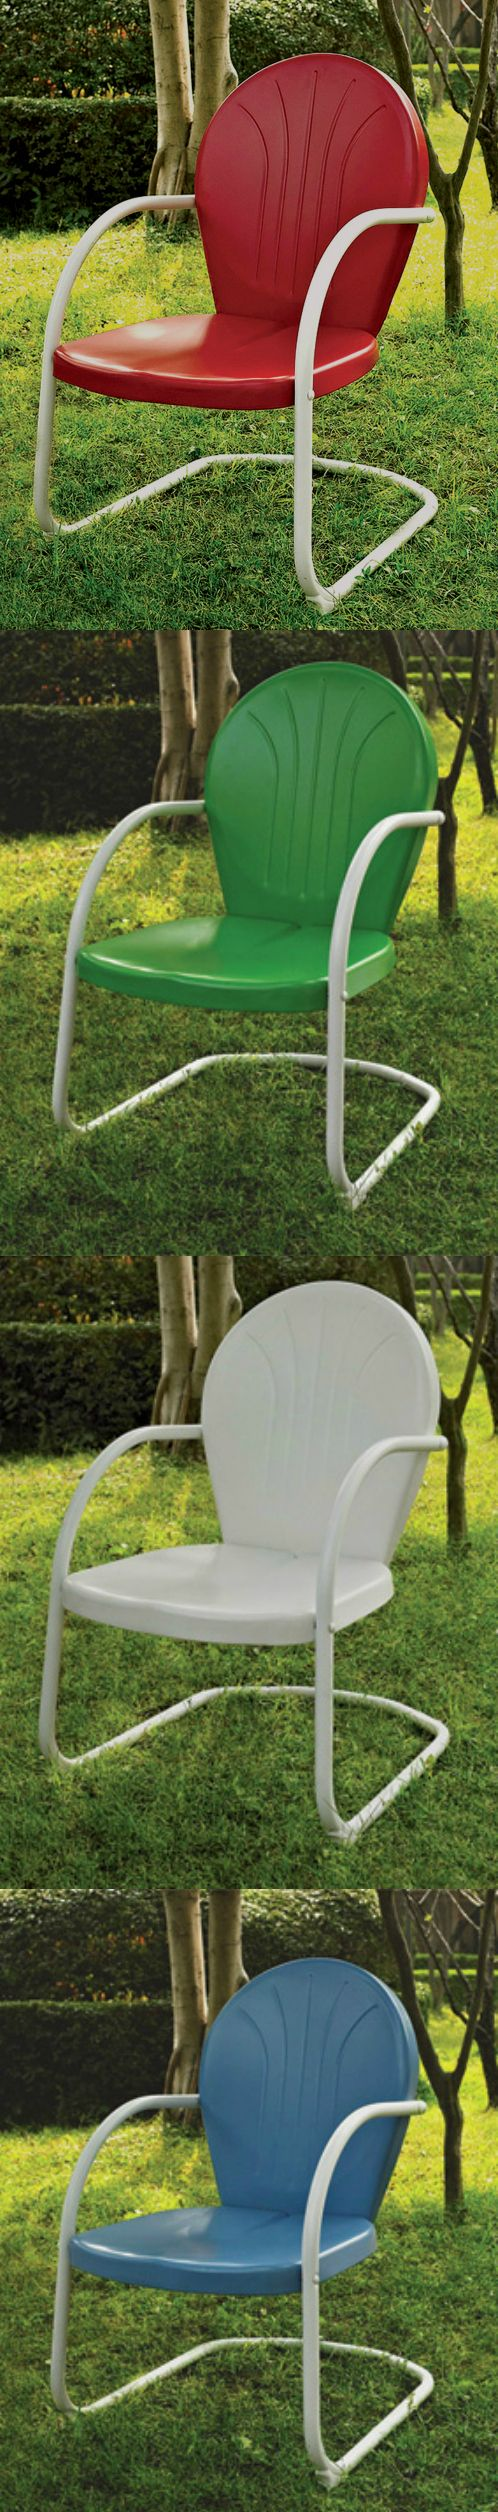 Retro outdoor chairs - Metal Outdoor Chair What Was Once Modern Becomes Retro